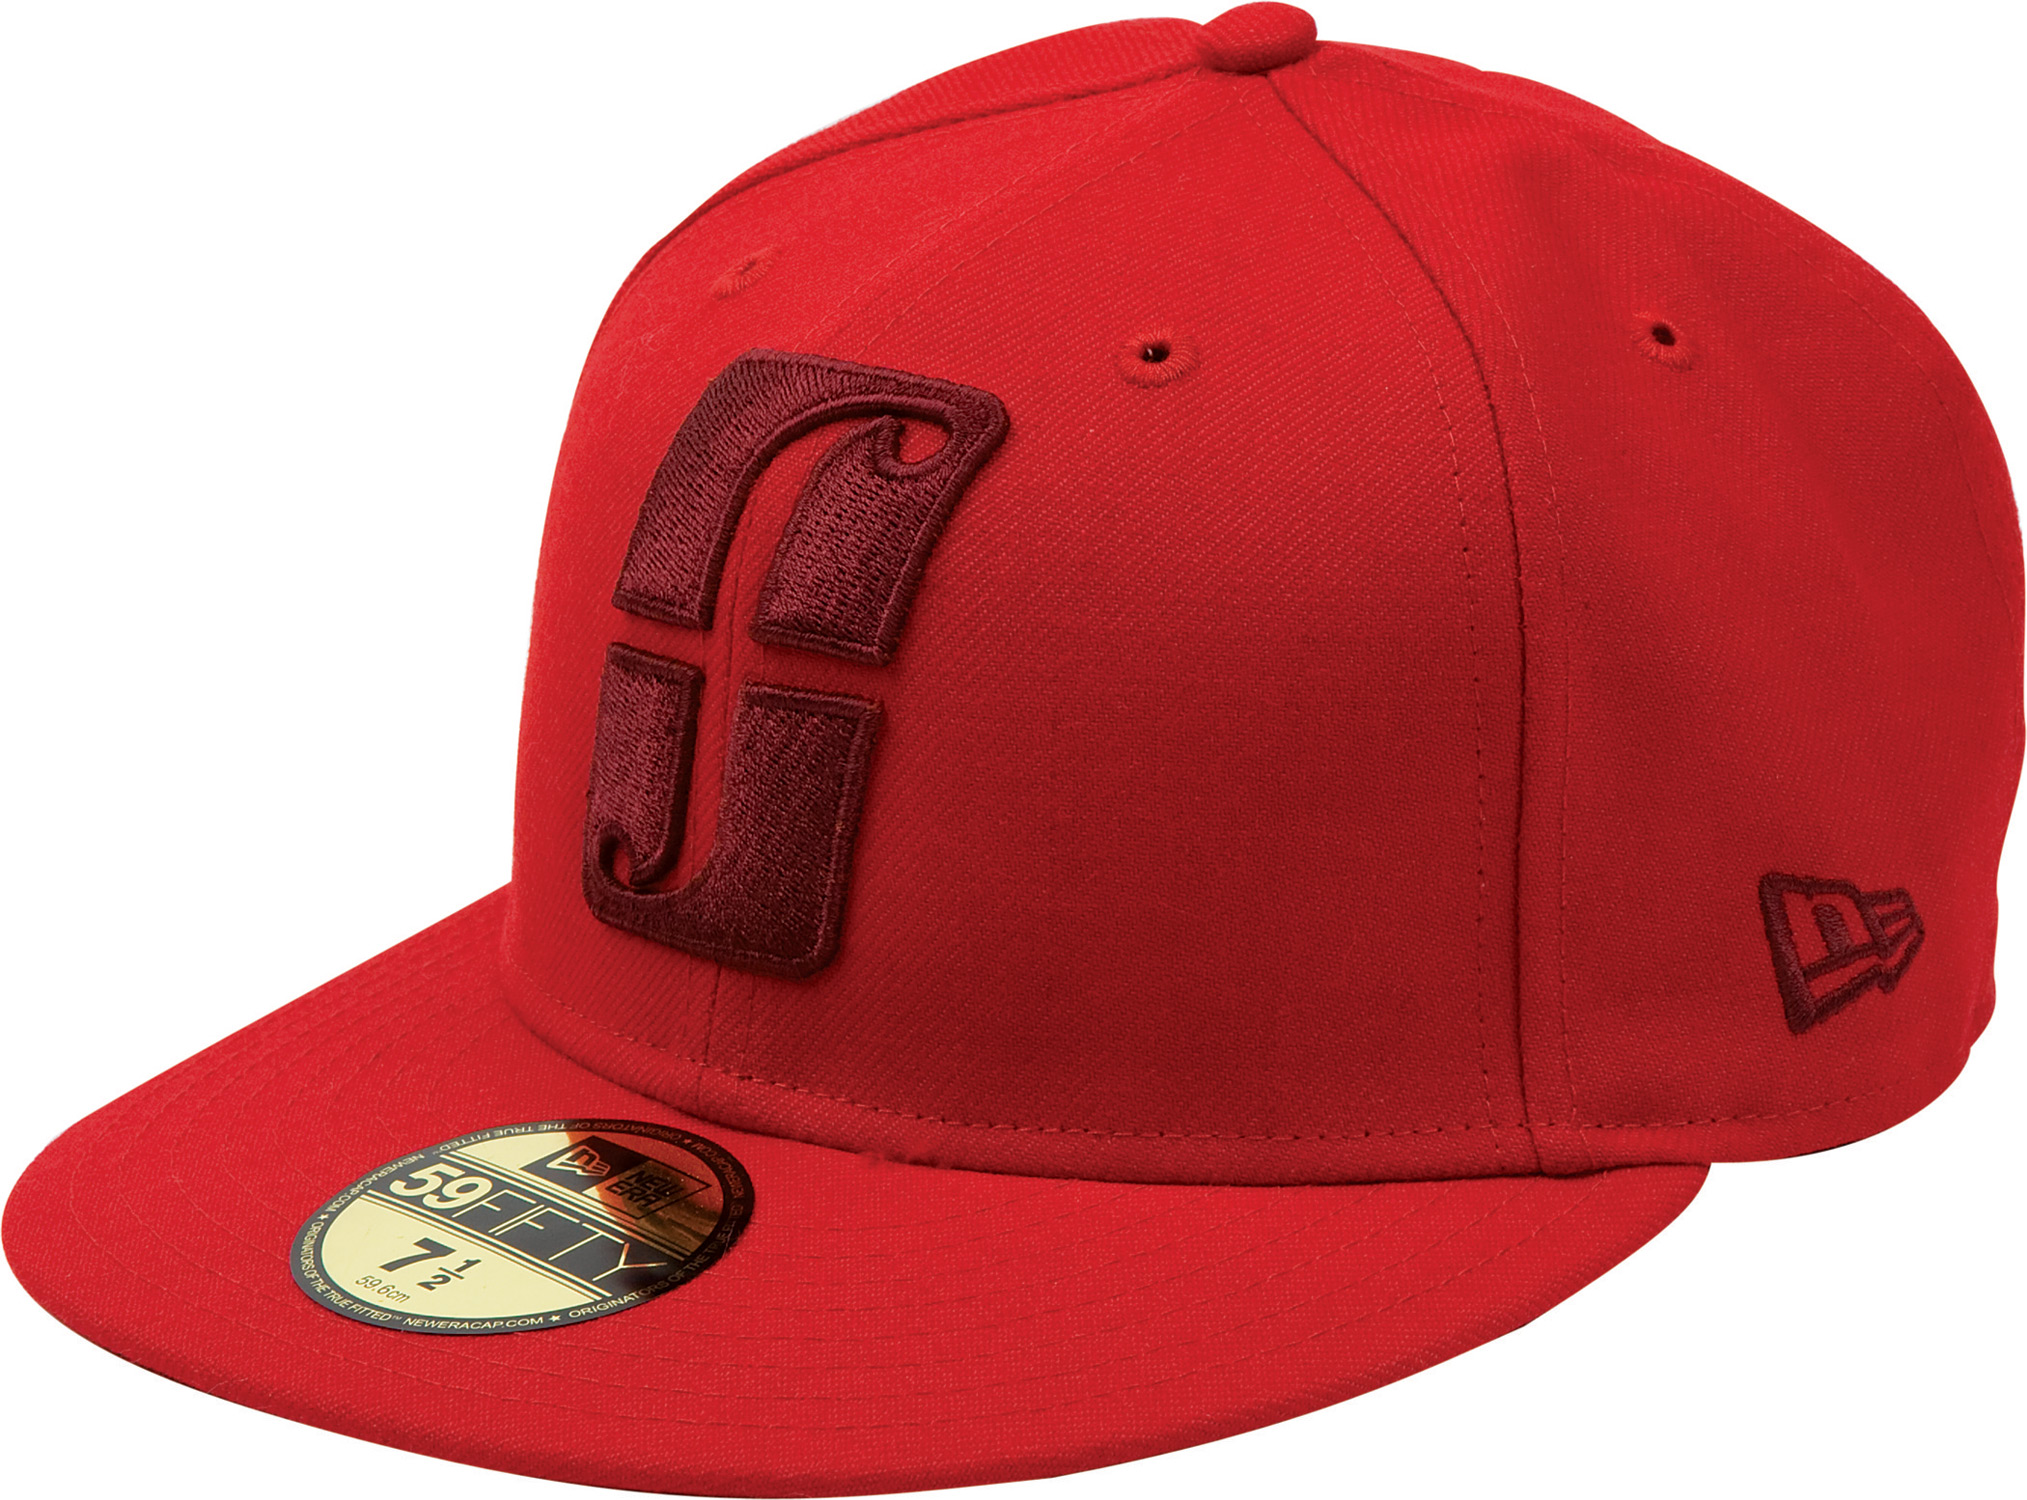 Forum Fm Icon New Era Red Cap - $10.95